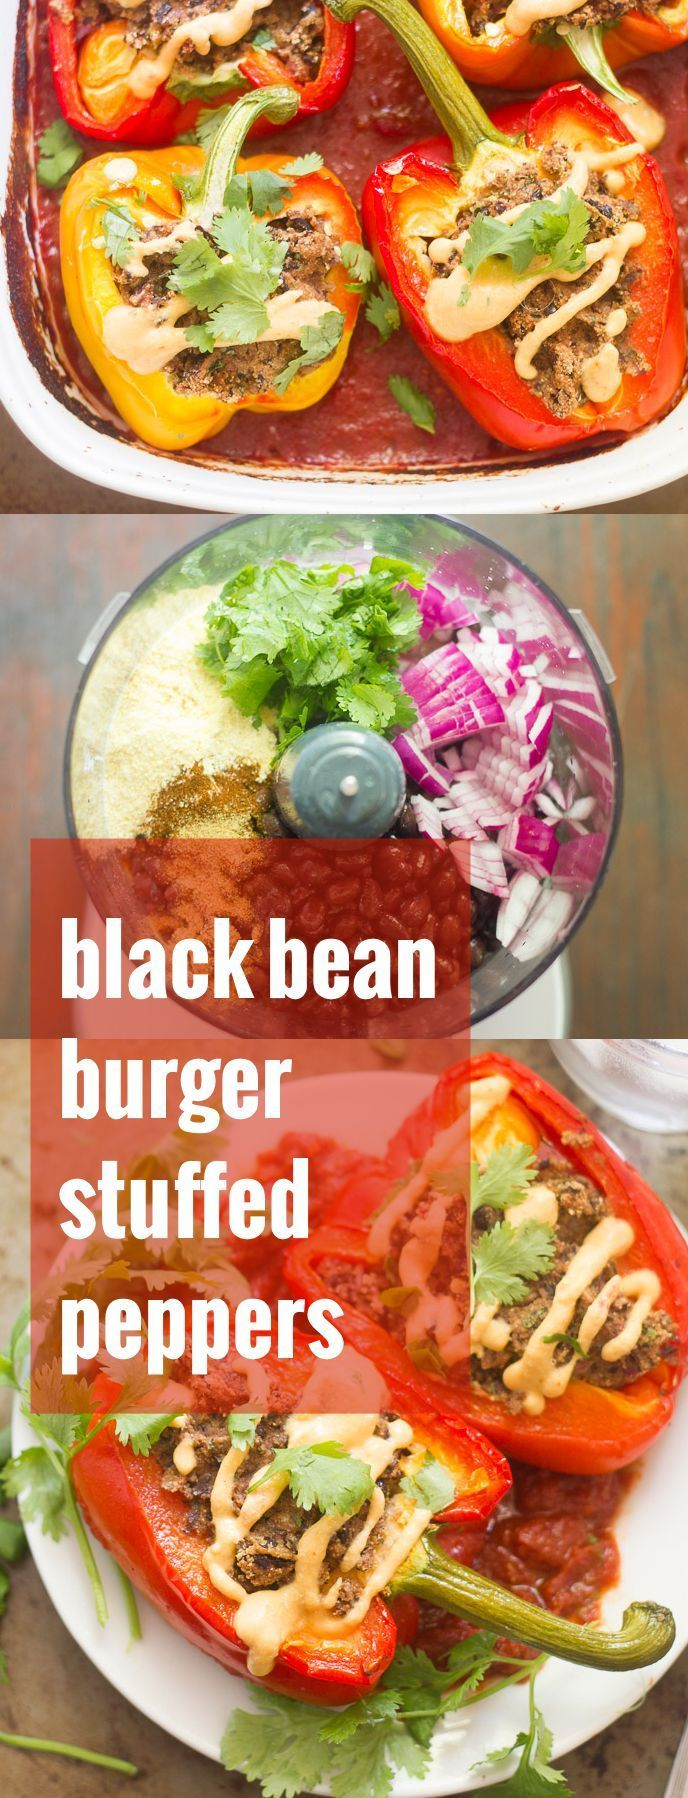 These vegan stuffed peppers are filled with a spicy southwestern-inspired black bean burger mix, baked to tender perfection, and drizzled in dairy-free cauliflower queso!